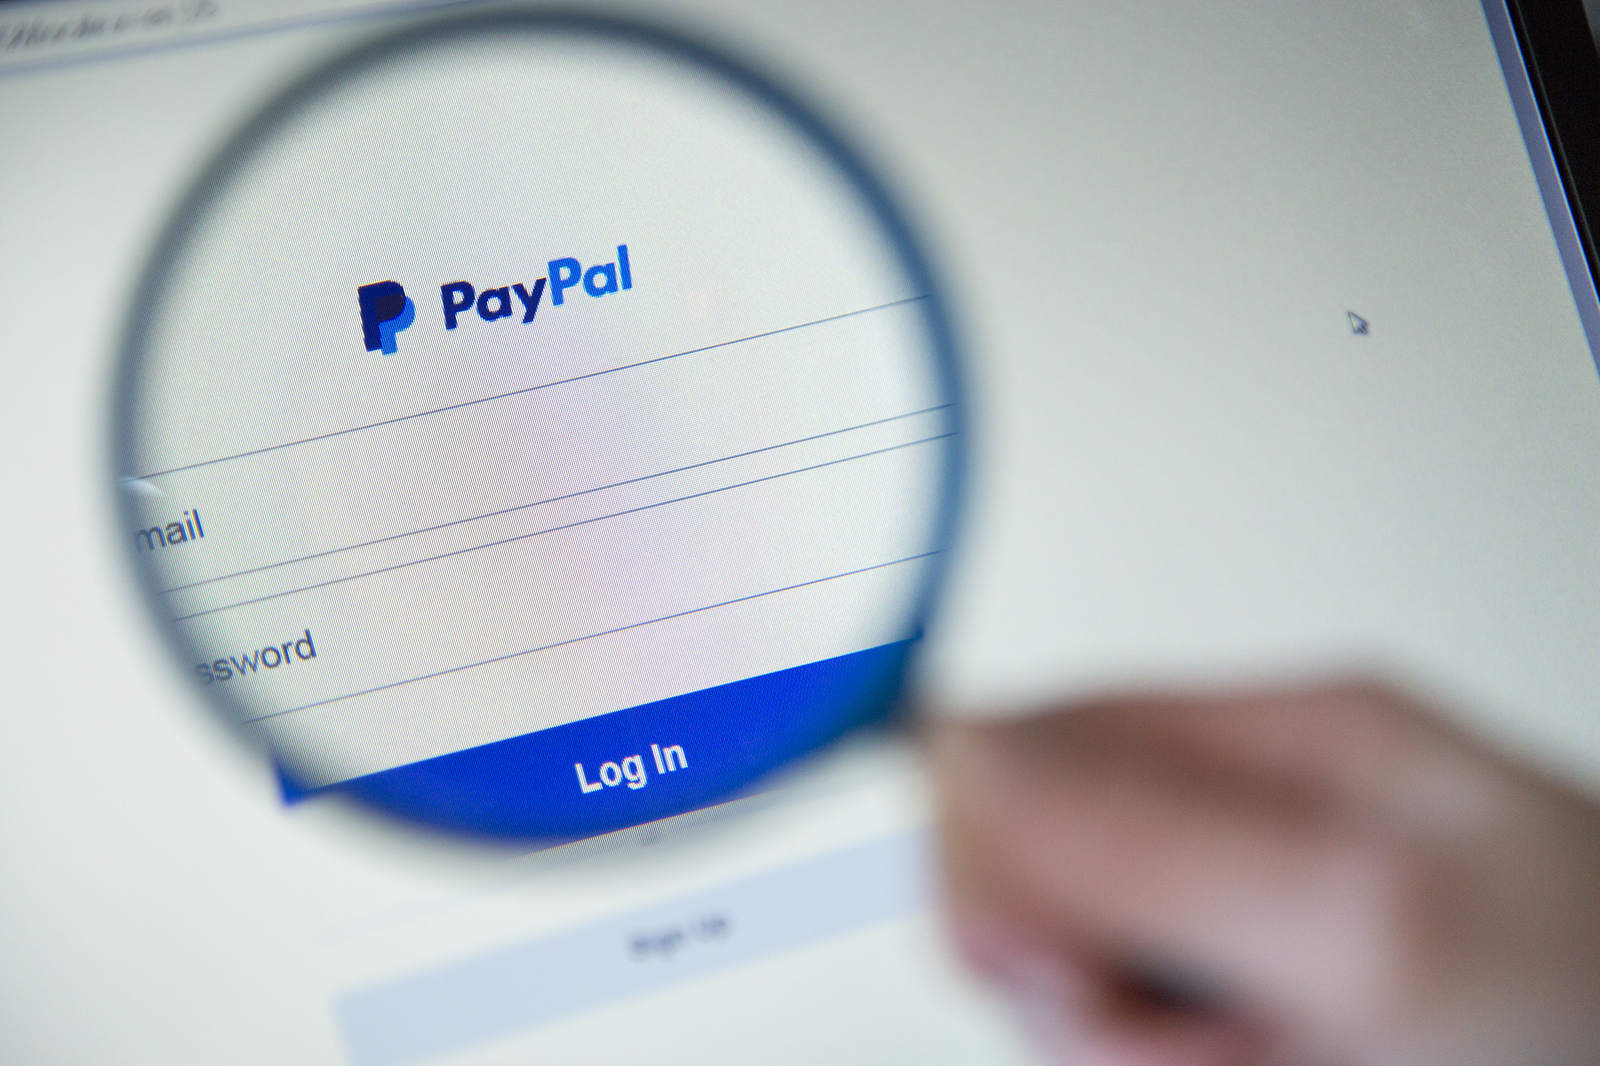 how to hack paypal 2018 without human verification